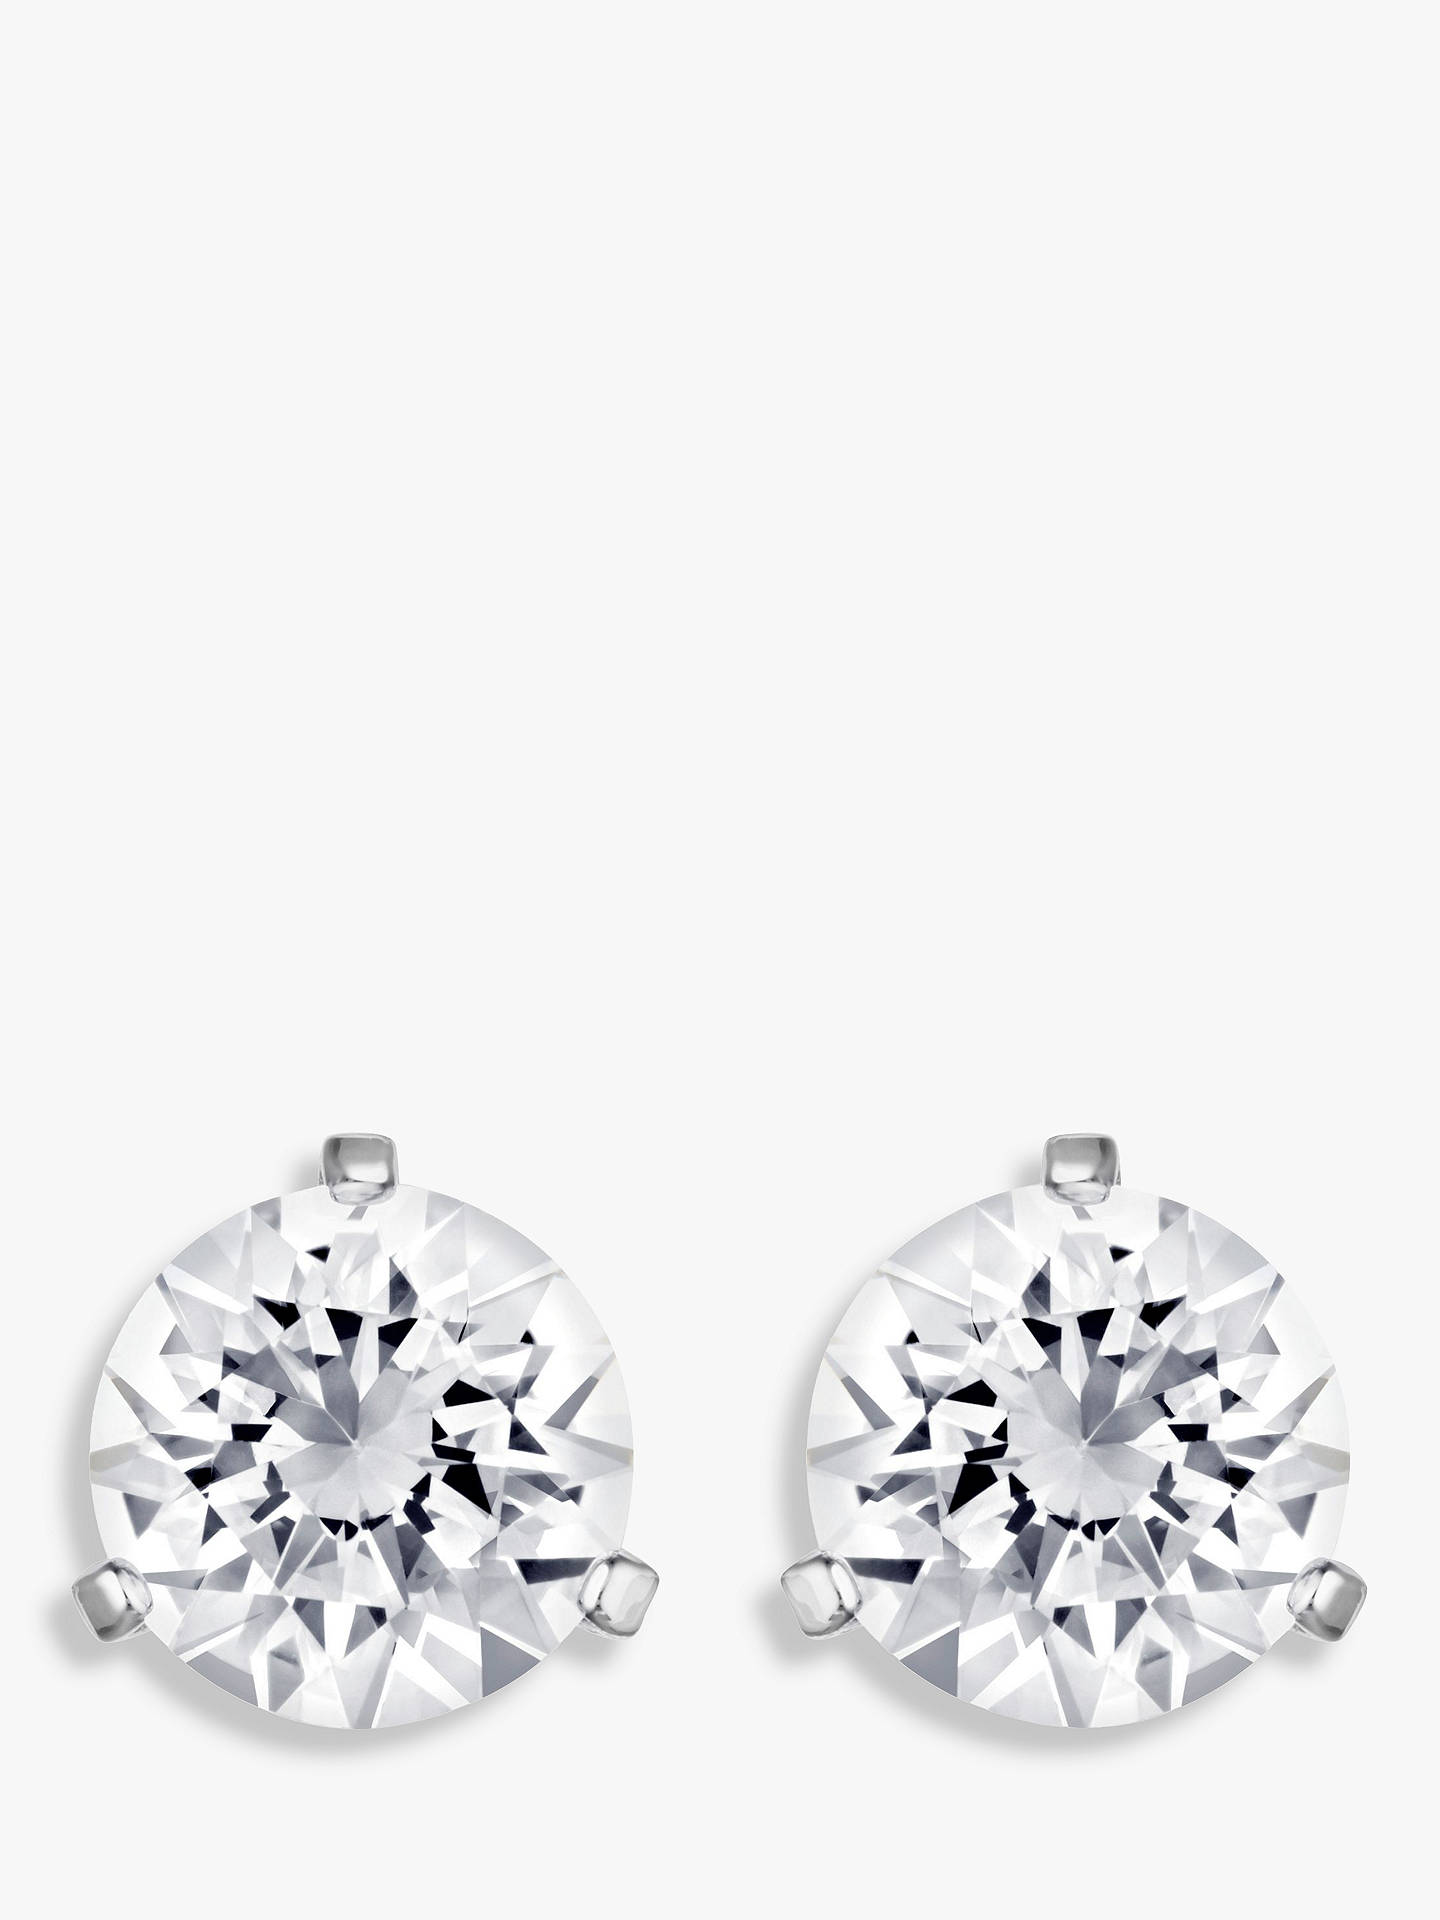 8d62f8adc776 Buy Swarovski Solitaire Round Crystal Stud Earrings